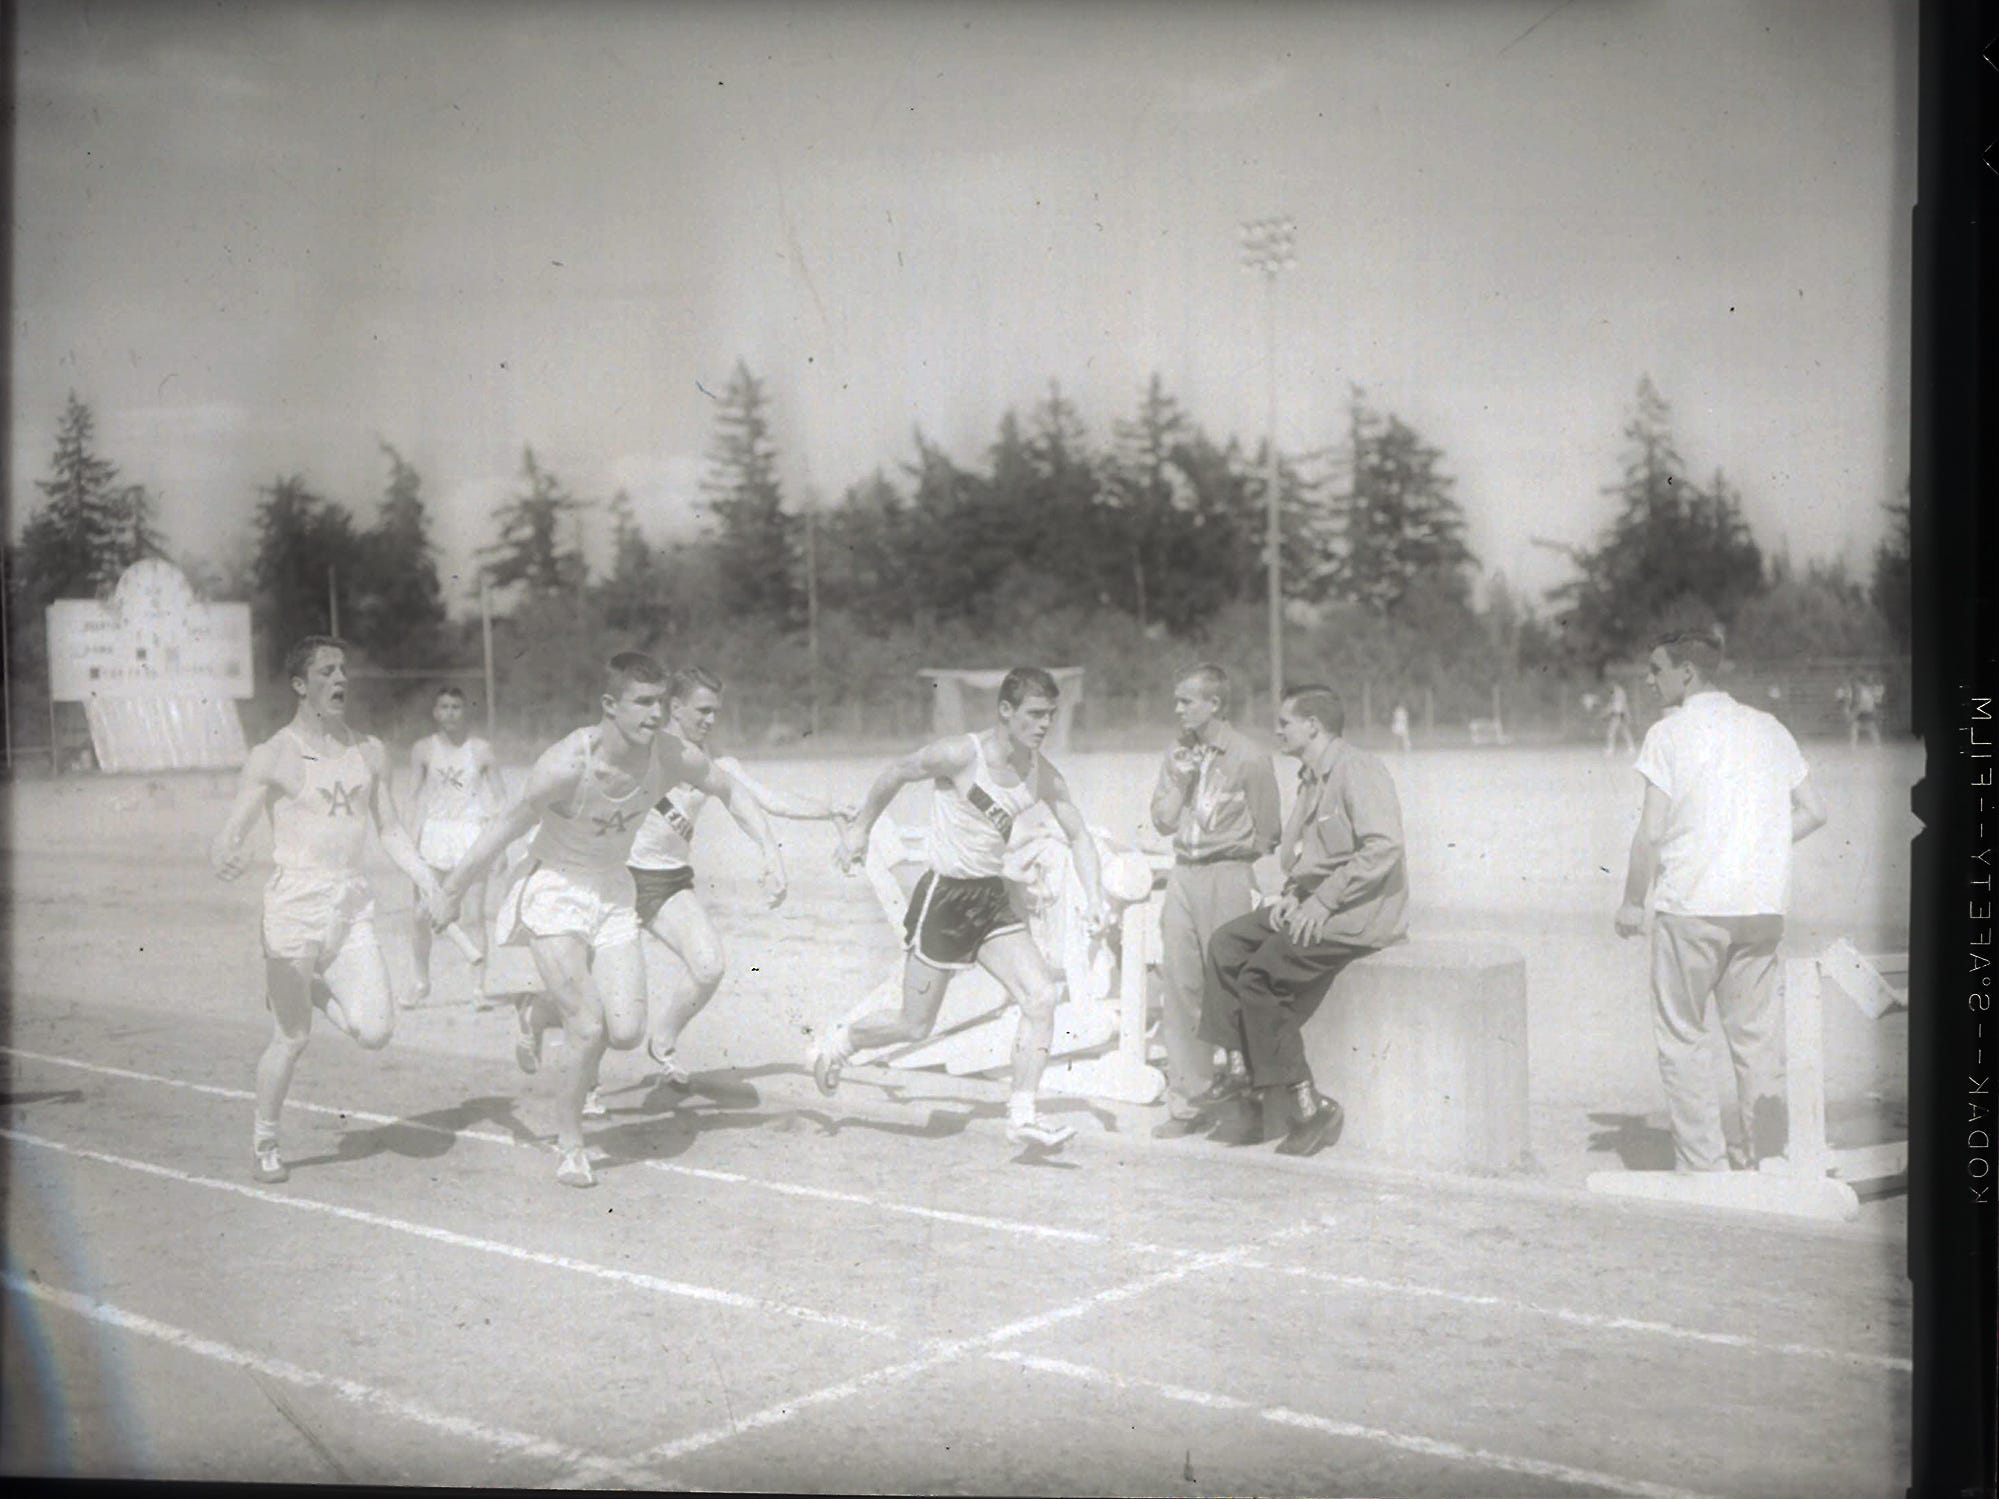 05/09/60